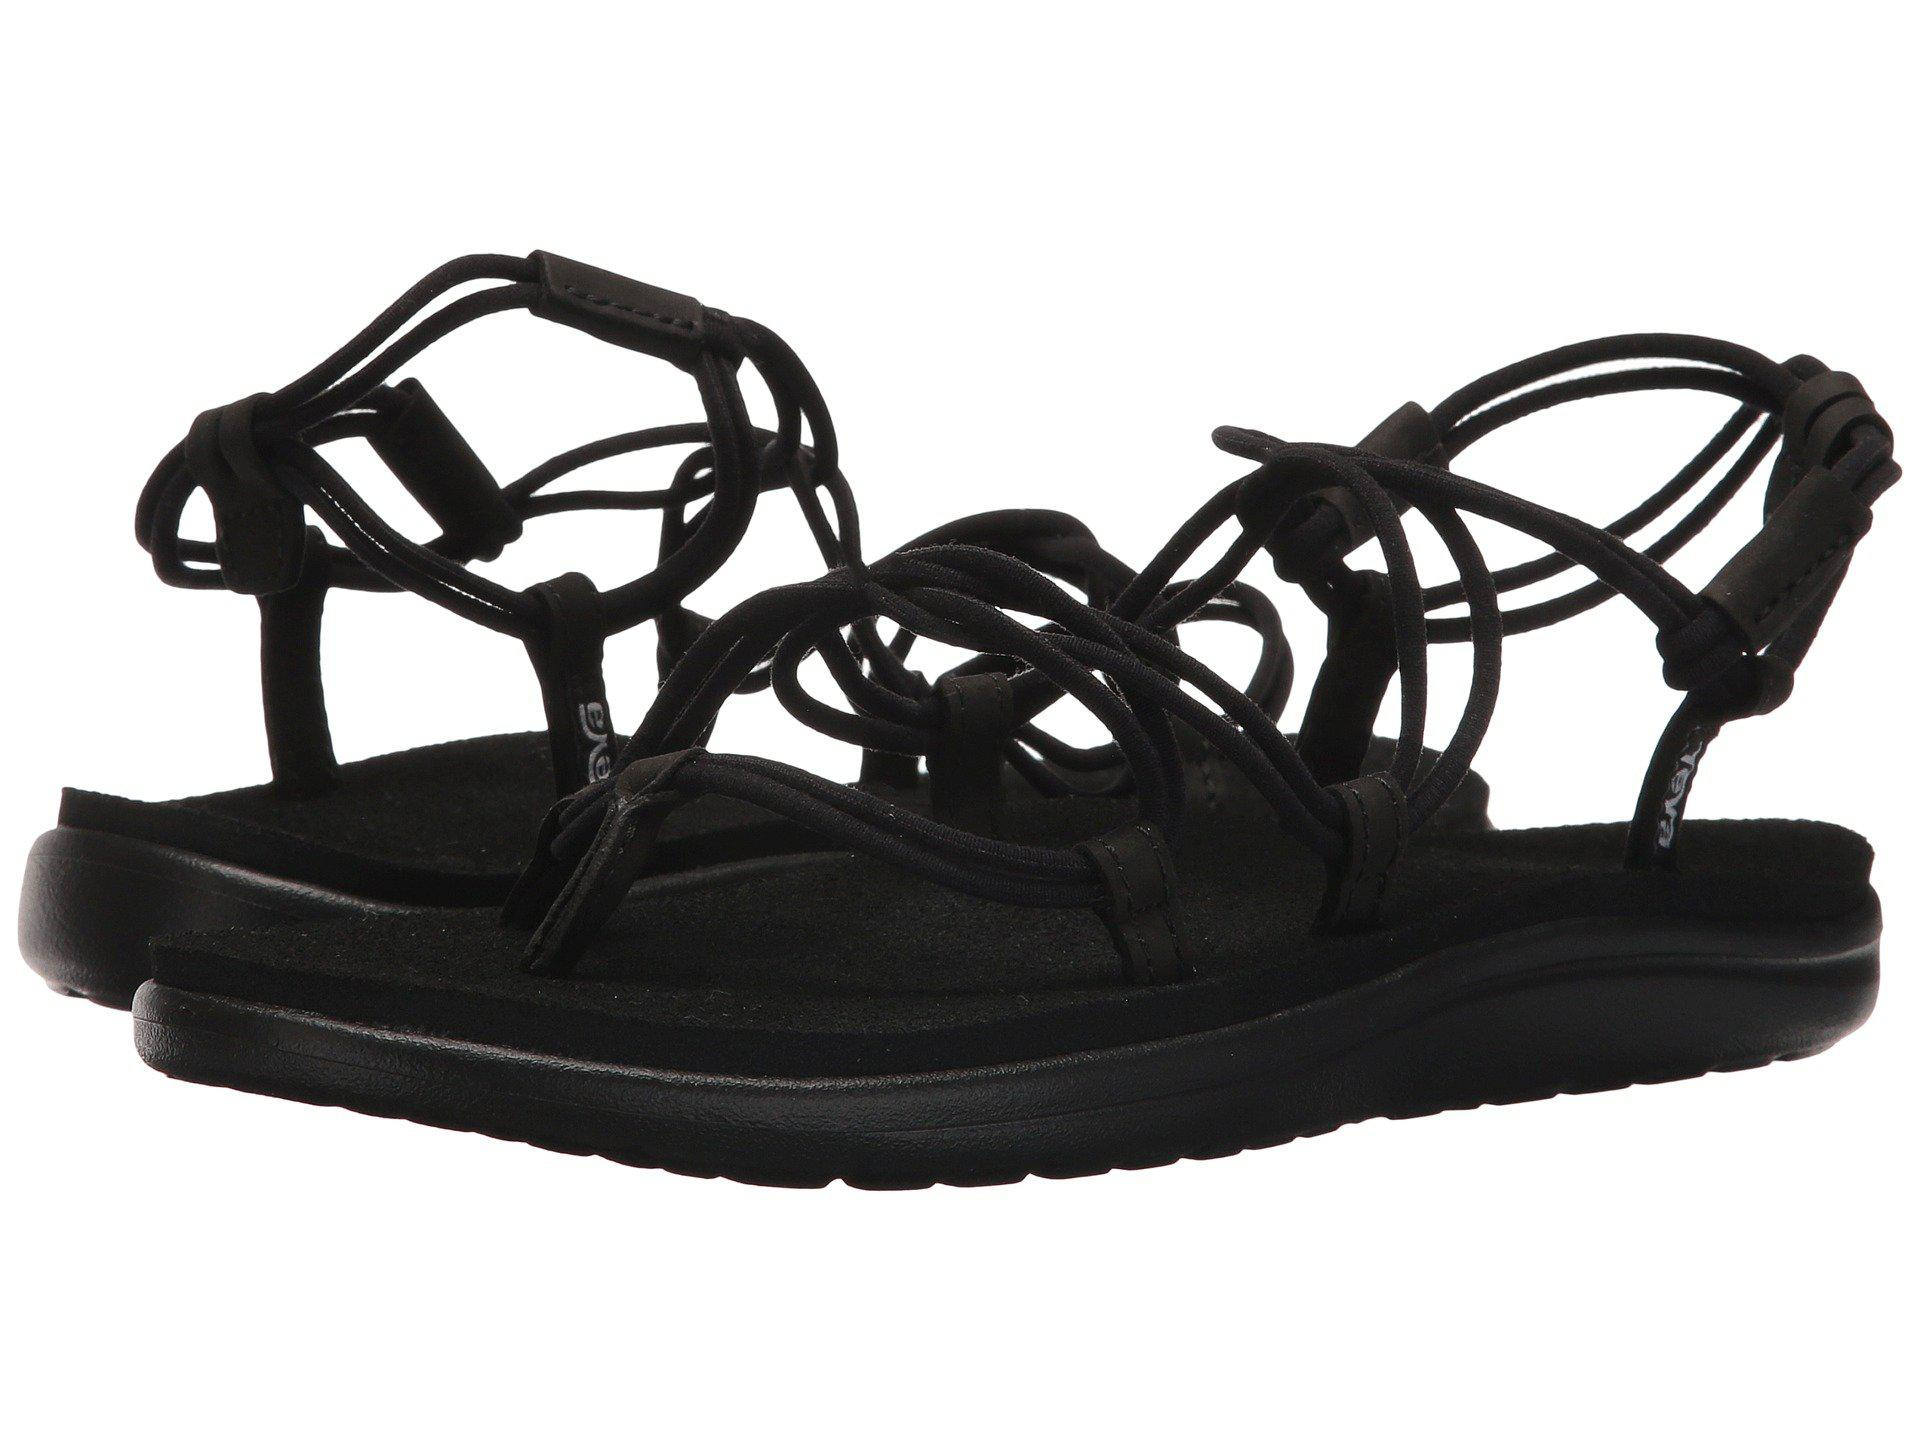 e631f5f21622 Lyst - Teva Voya Infinity (black) Women s Shoes in Black